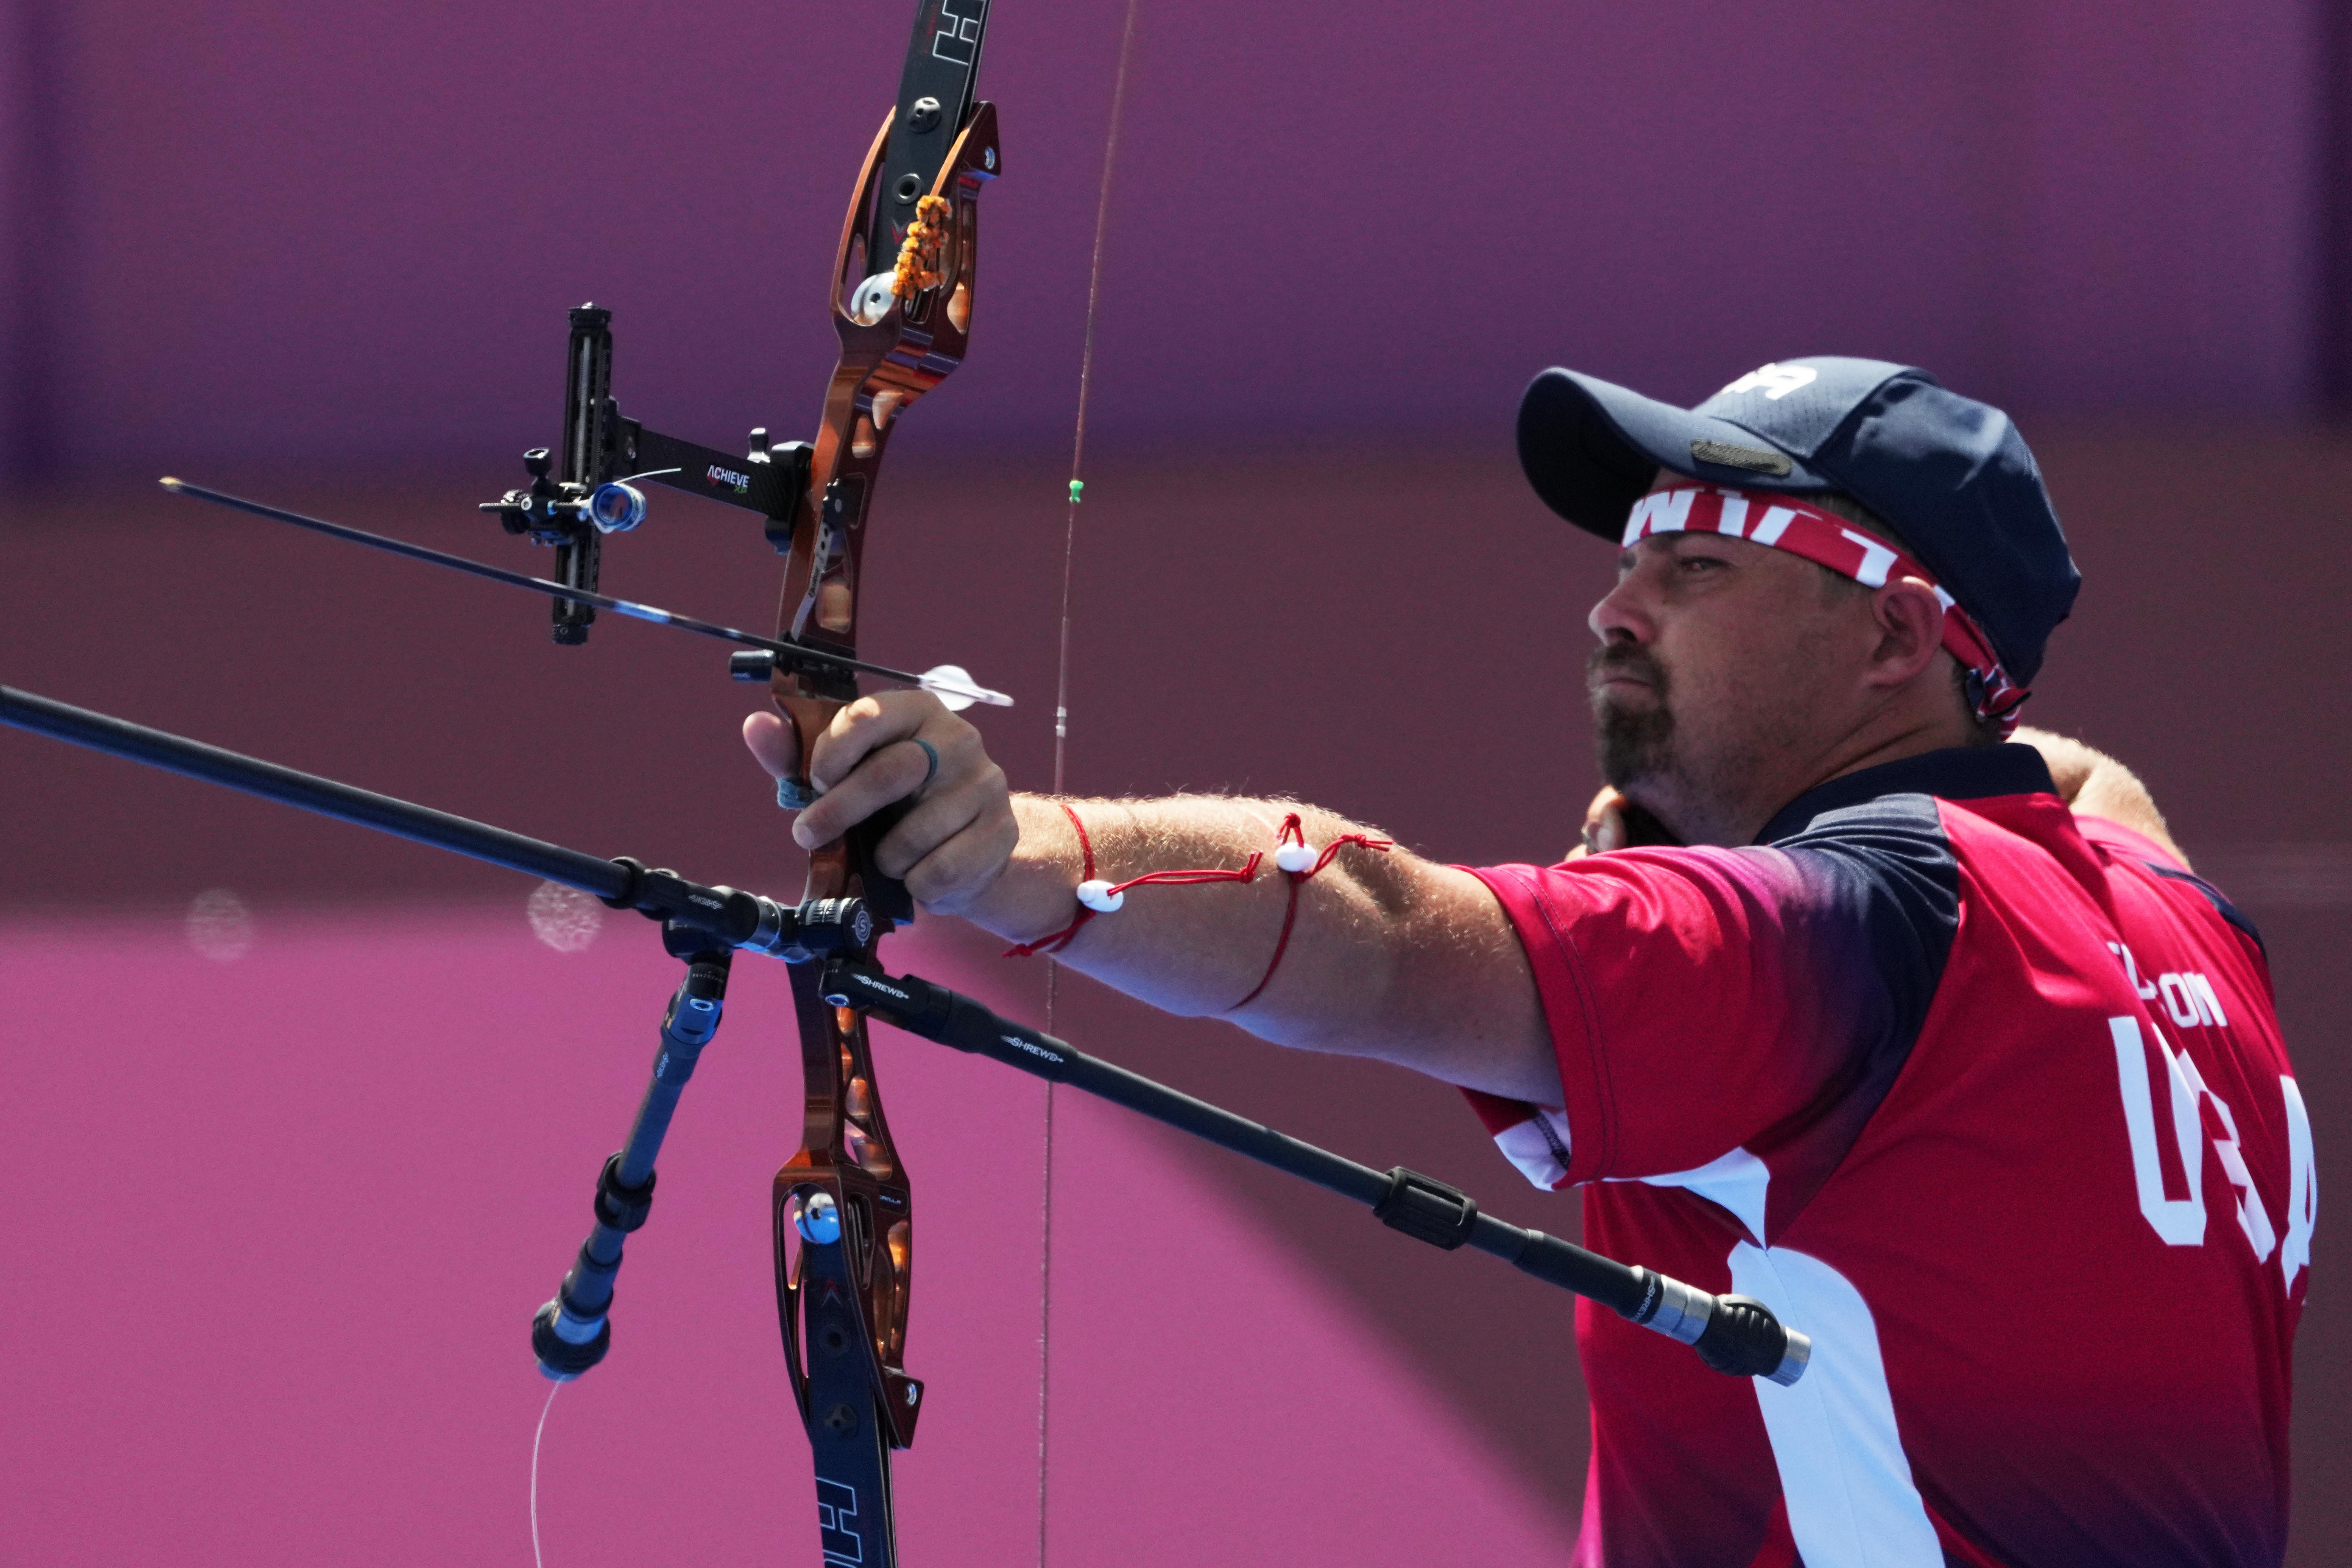 Jul 24, 2021; Tokyo, Japan; Brady Ellison (USA) competes in the mixed team elimination round during the Tokyo 2020 Olympic Summer Games at Yumenoshima Archery Field. Mandatory Credit: Kirby Lee-USA TODAY Network